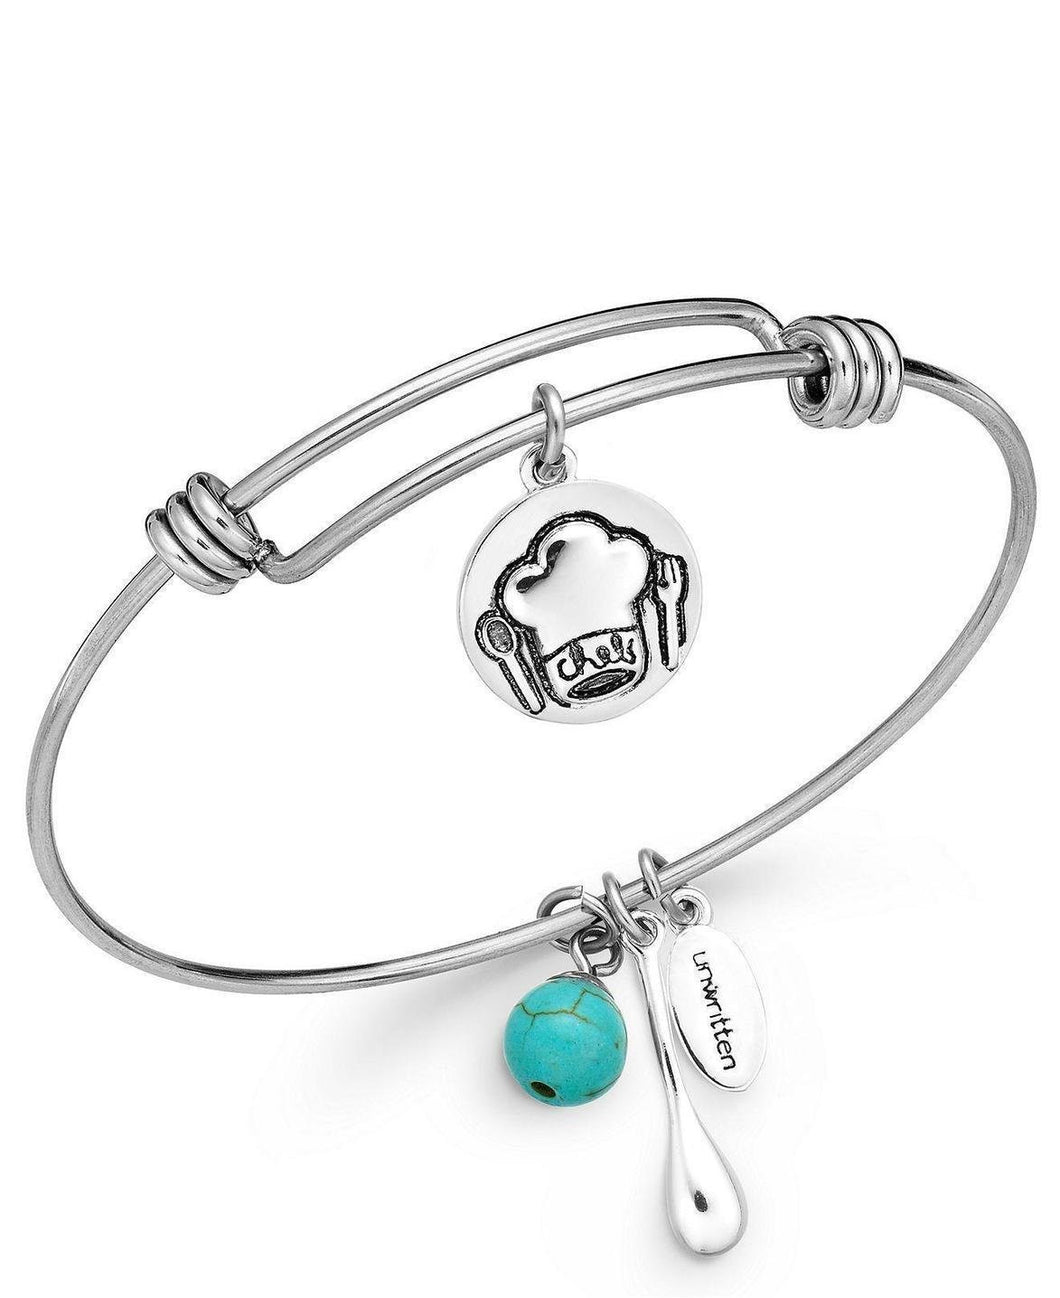 Unwritten Chef Charm and Manufactured Turquoise (8mm) Bangle Bracelet